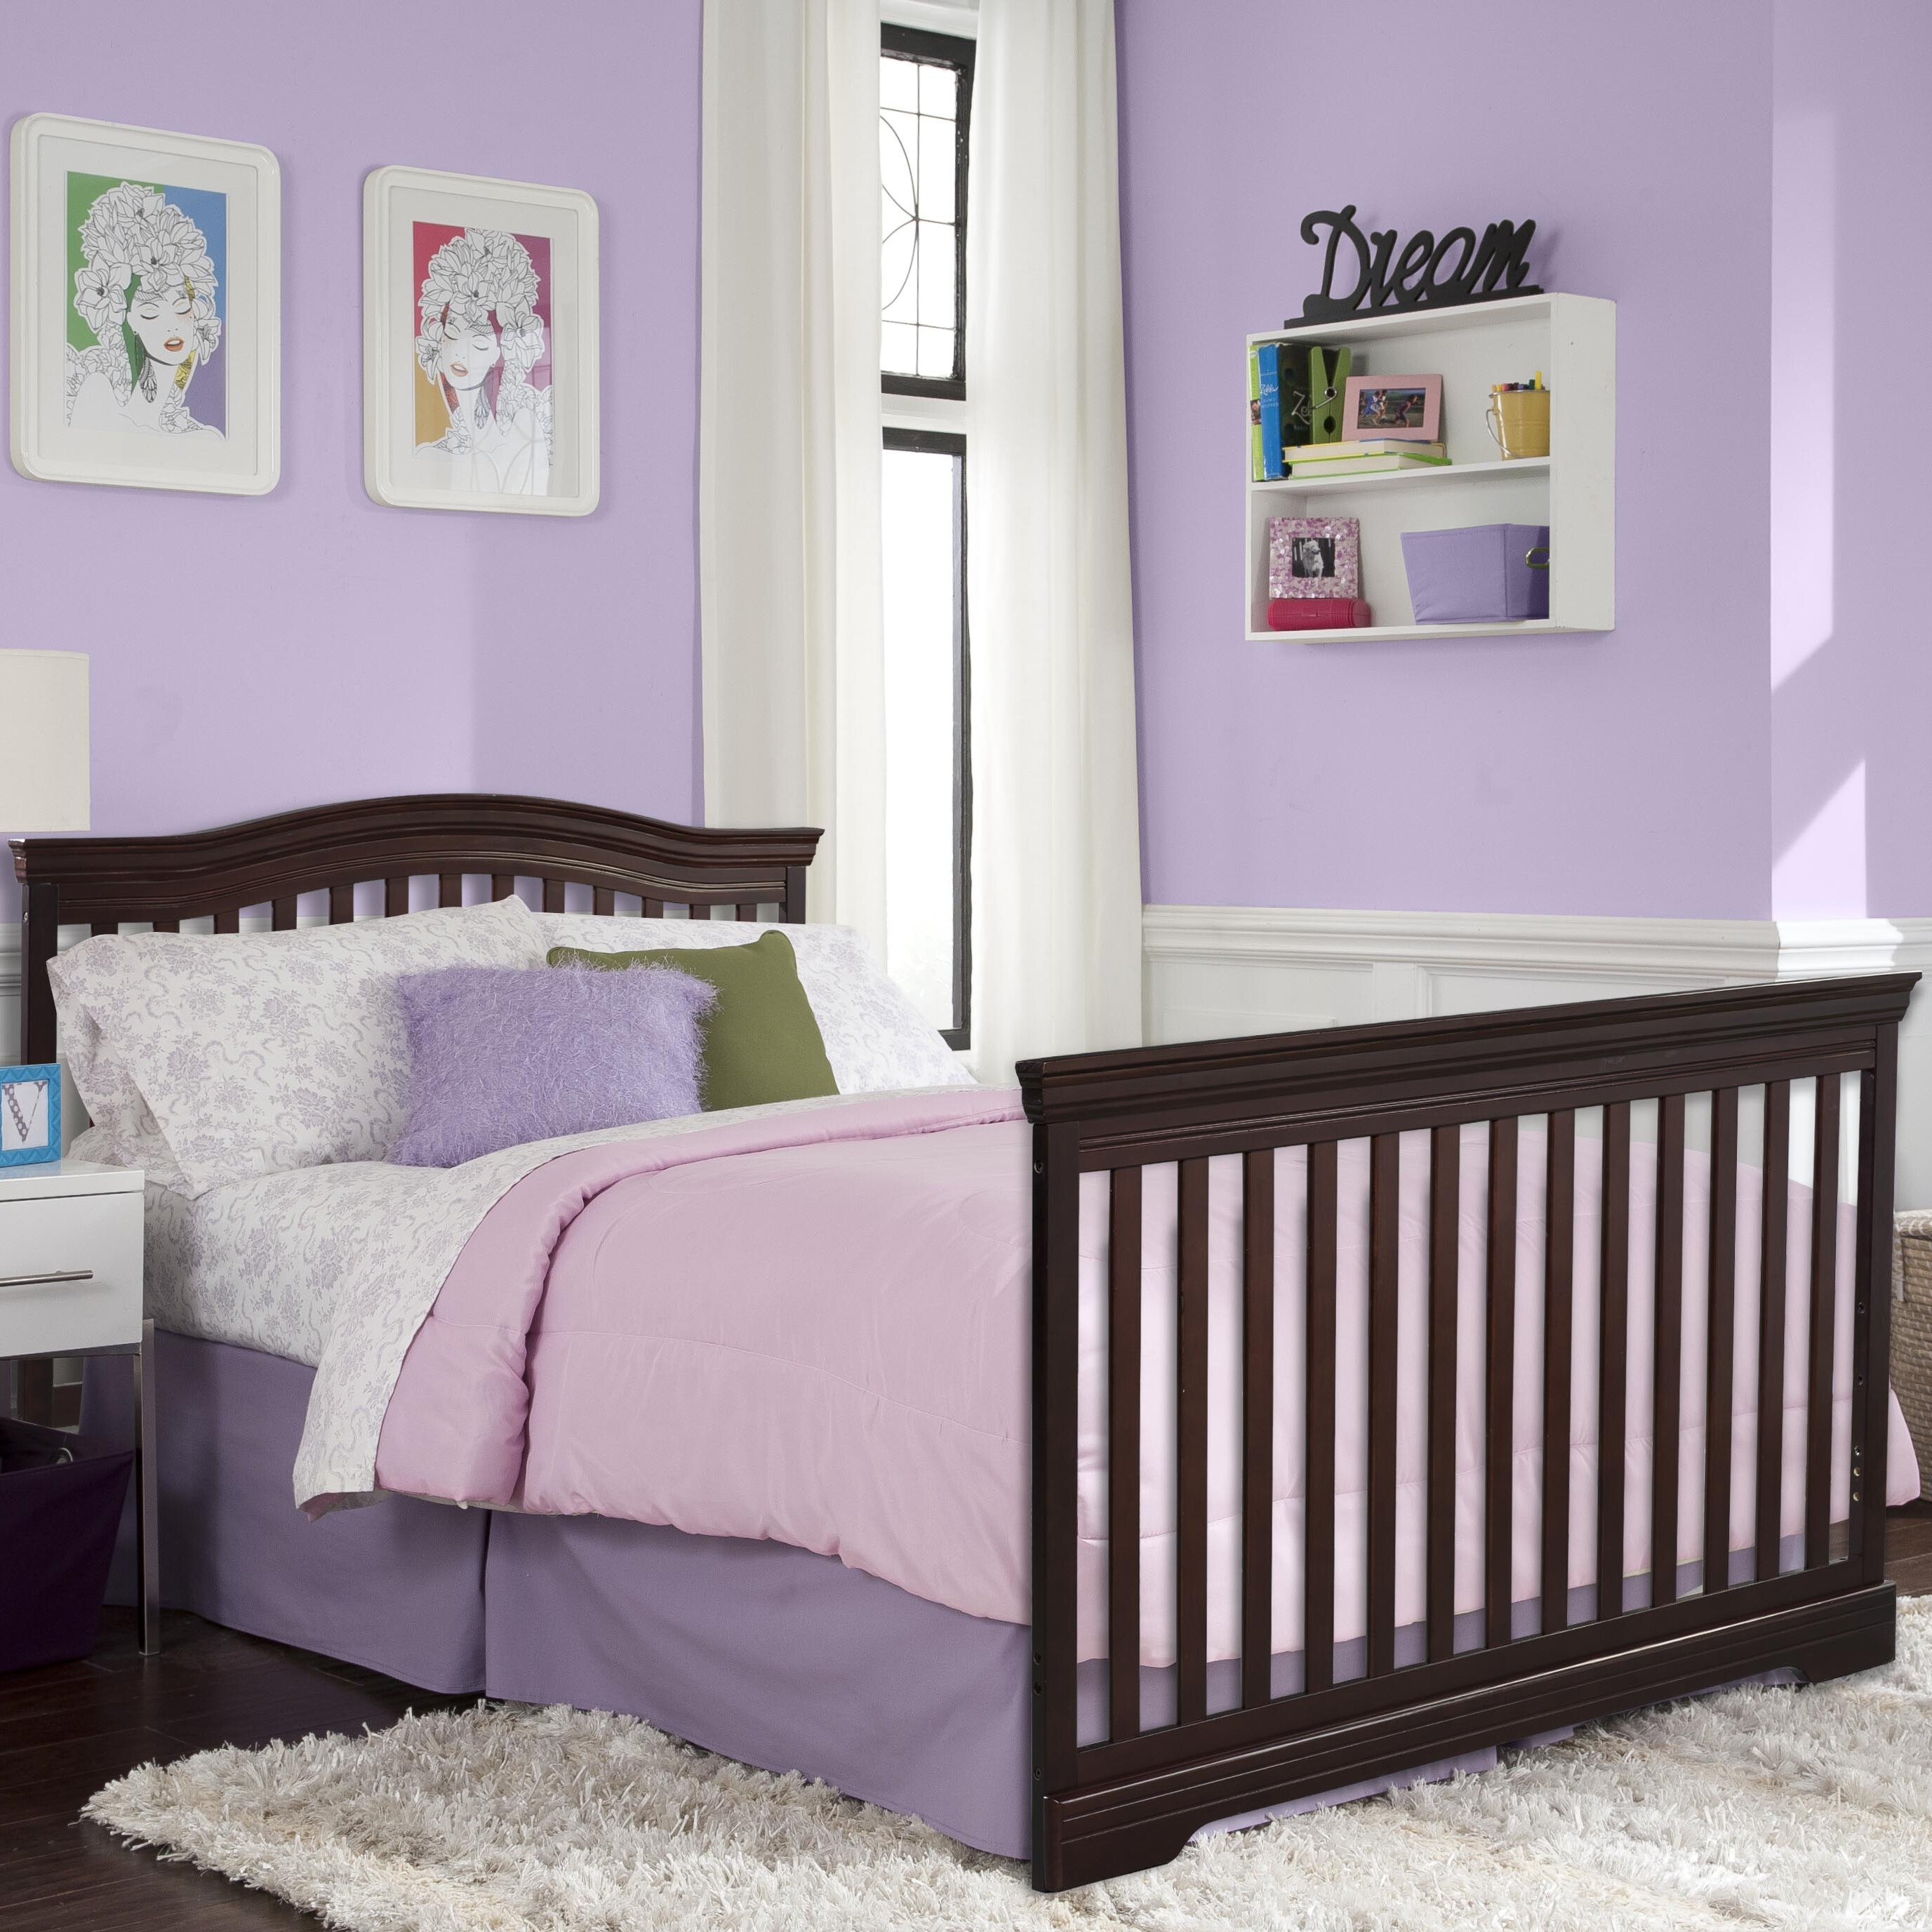 Crib heights for babies - Broyhill Kids Bowen 4 In 1 Heights Convertible Crib